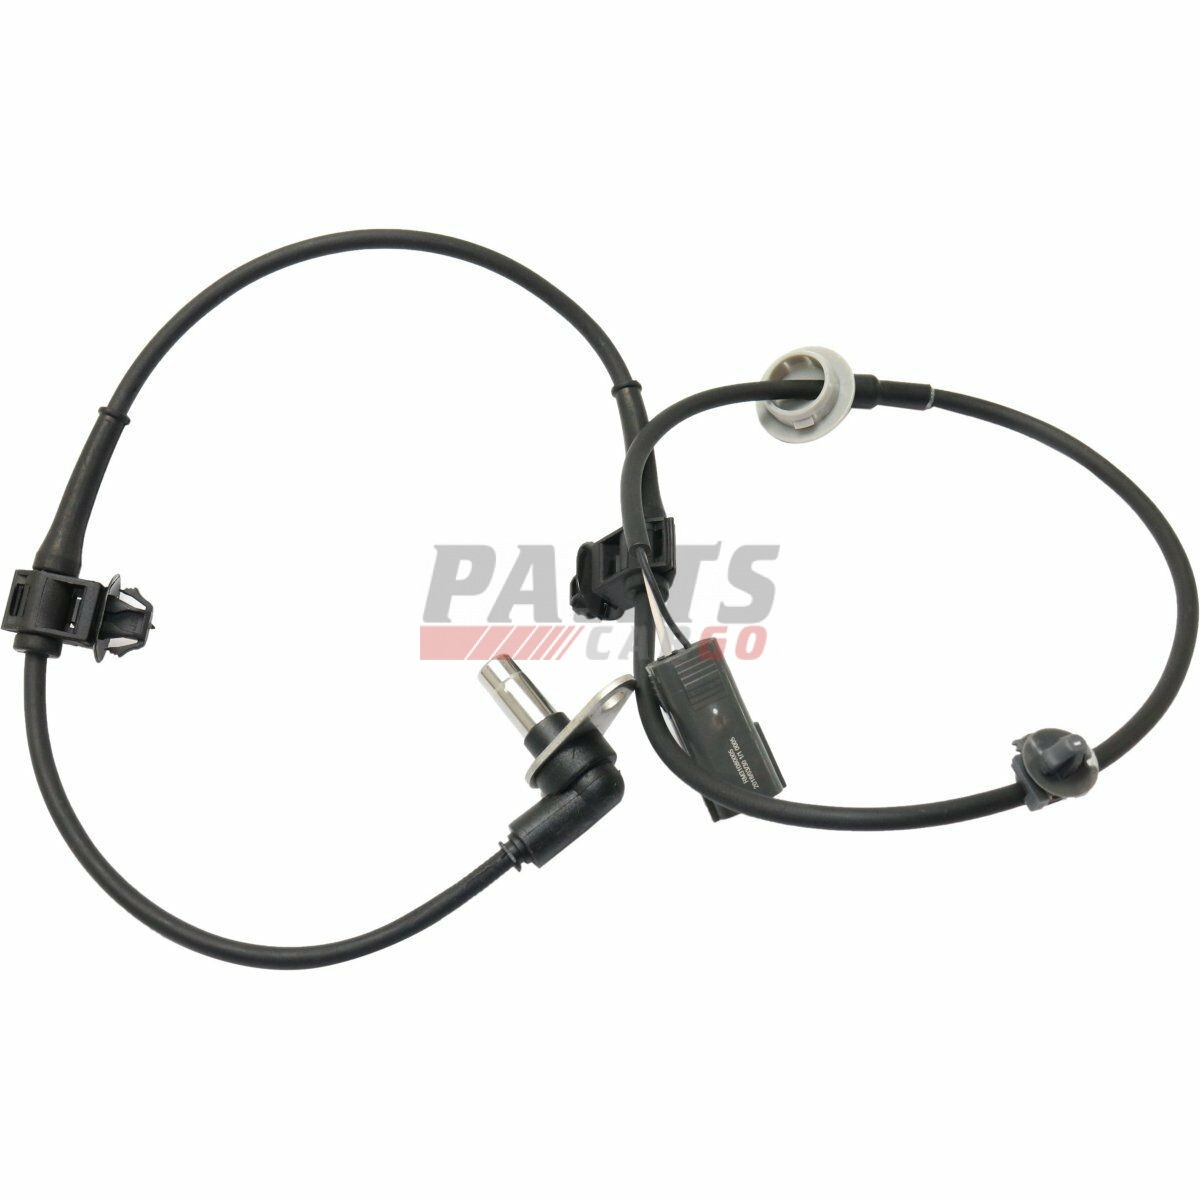 NEW ABS SPEED SENSOR FRONT RIGHT FITS 2007-2014 MAZDA CX-9